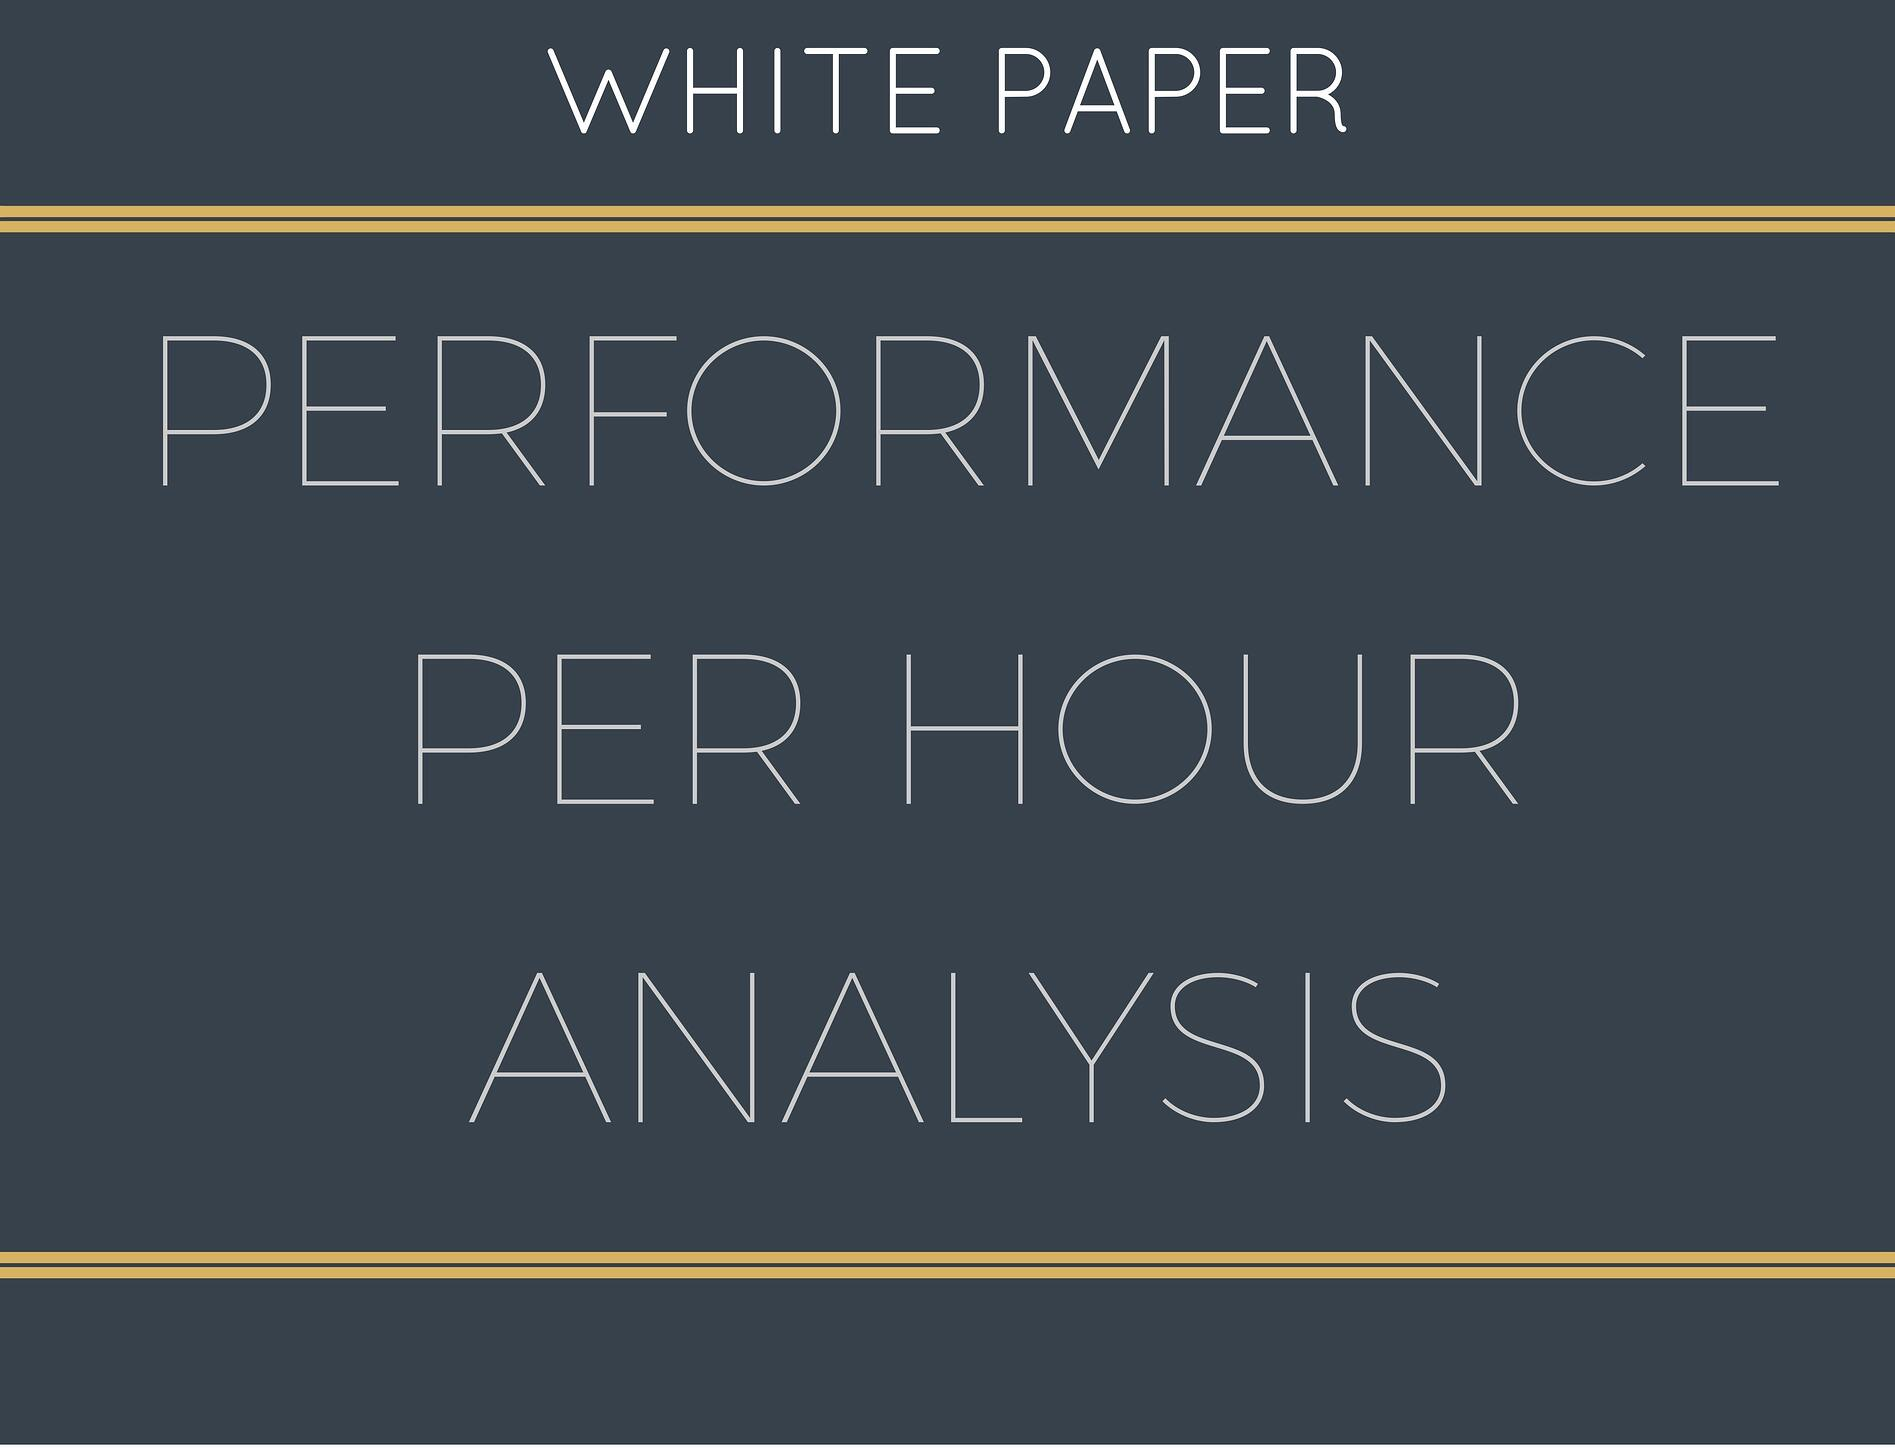 Resources_White_Paper_Performance_Per_Hour_Analysis.jpg